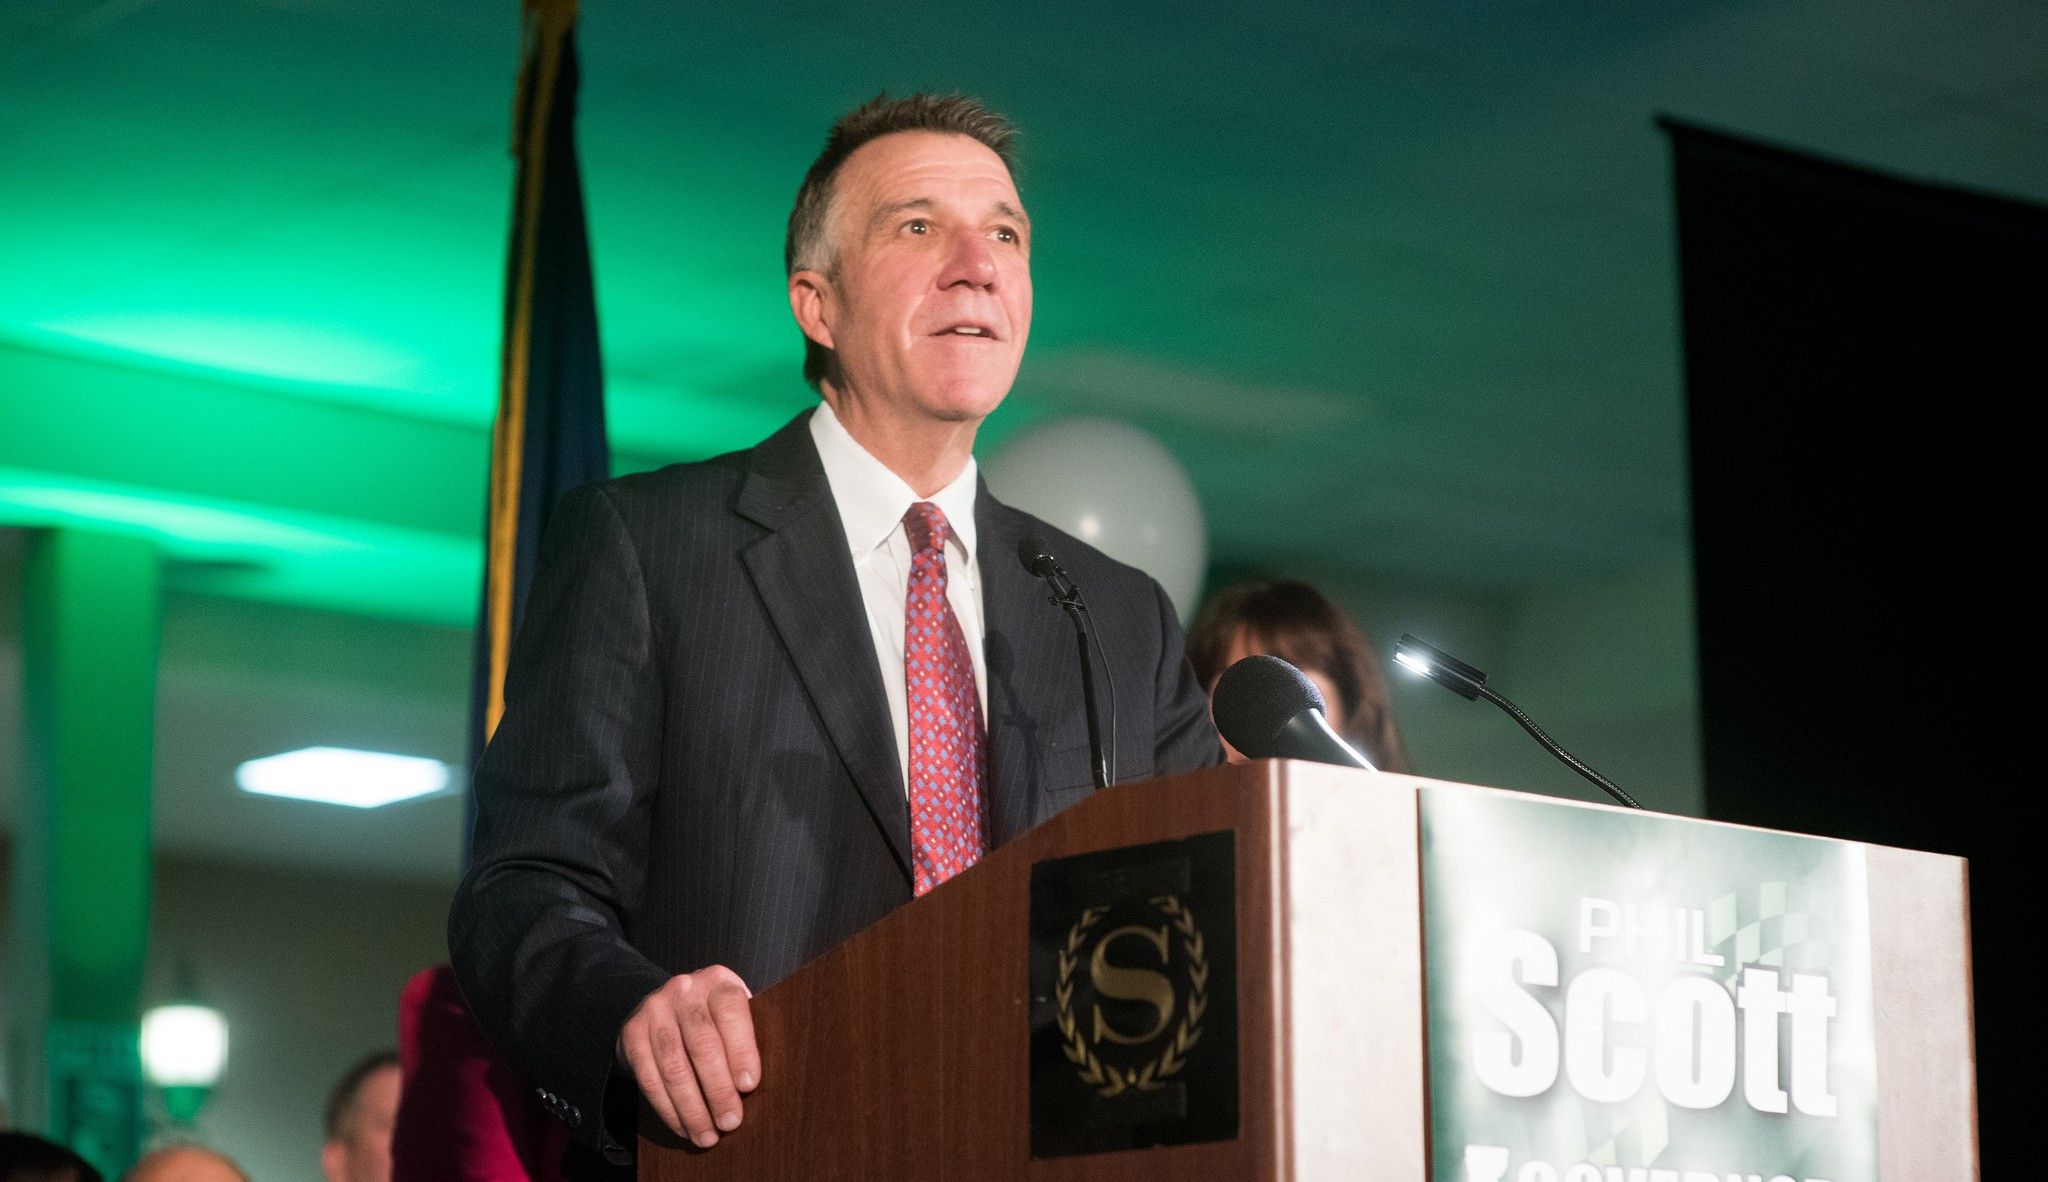 Lt. Gov. Phil Scott speaking behind a podium wearing a suit and a red tie, lighting has green tinge